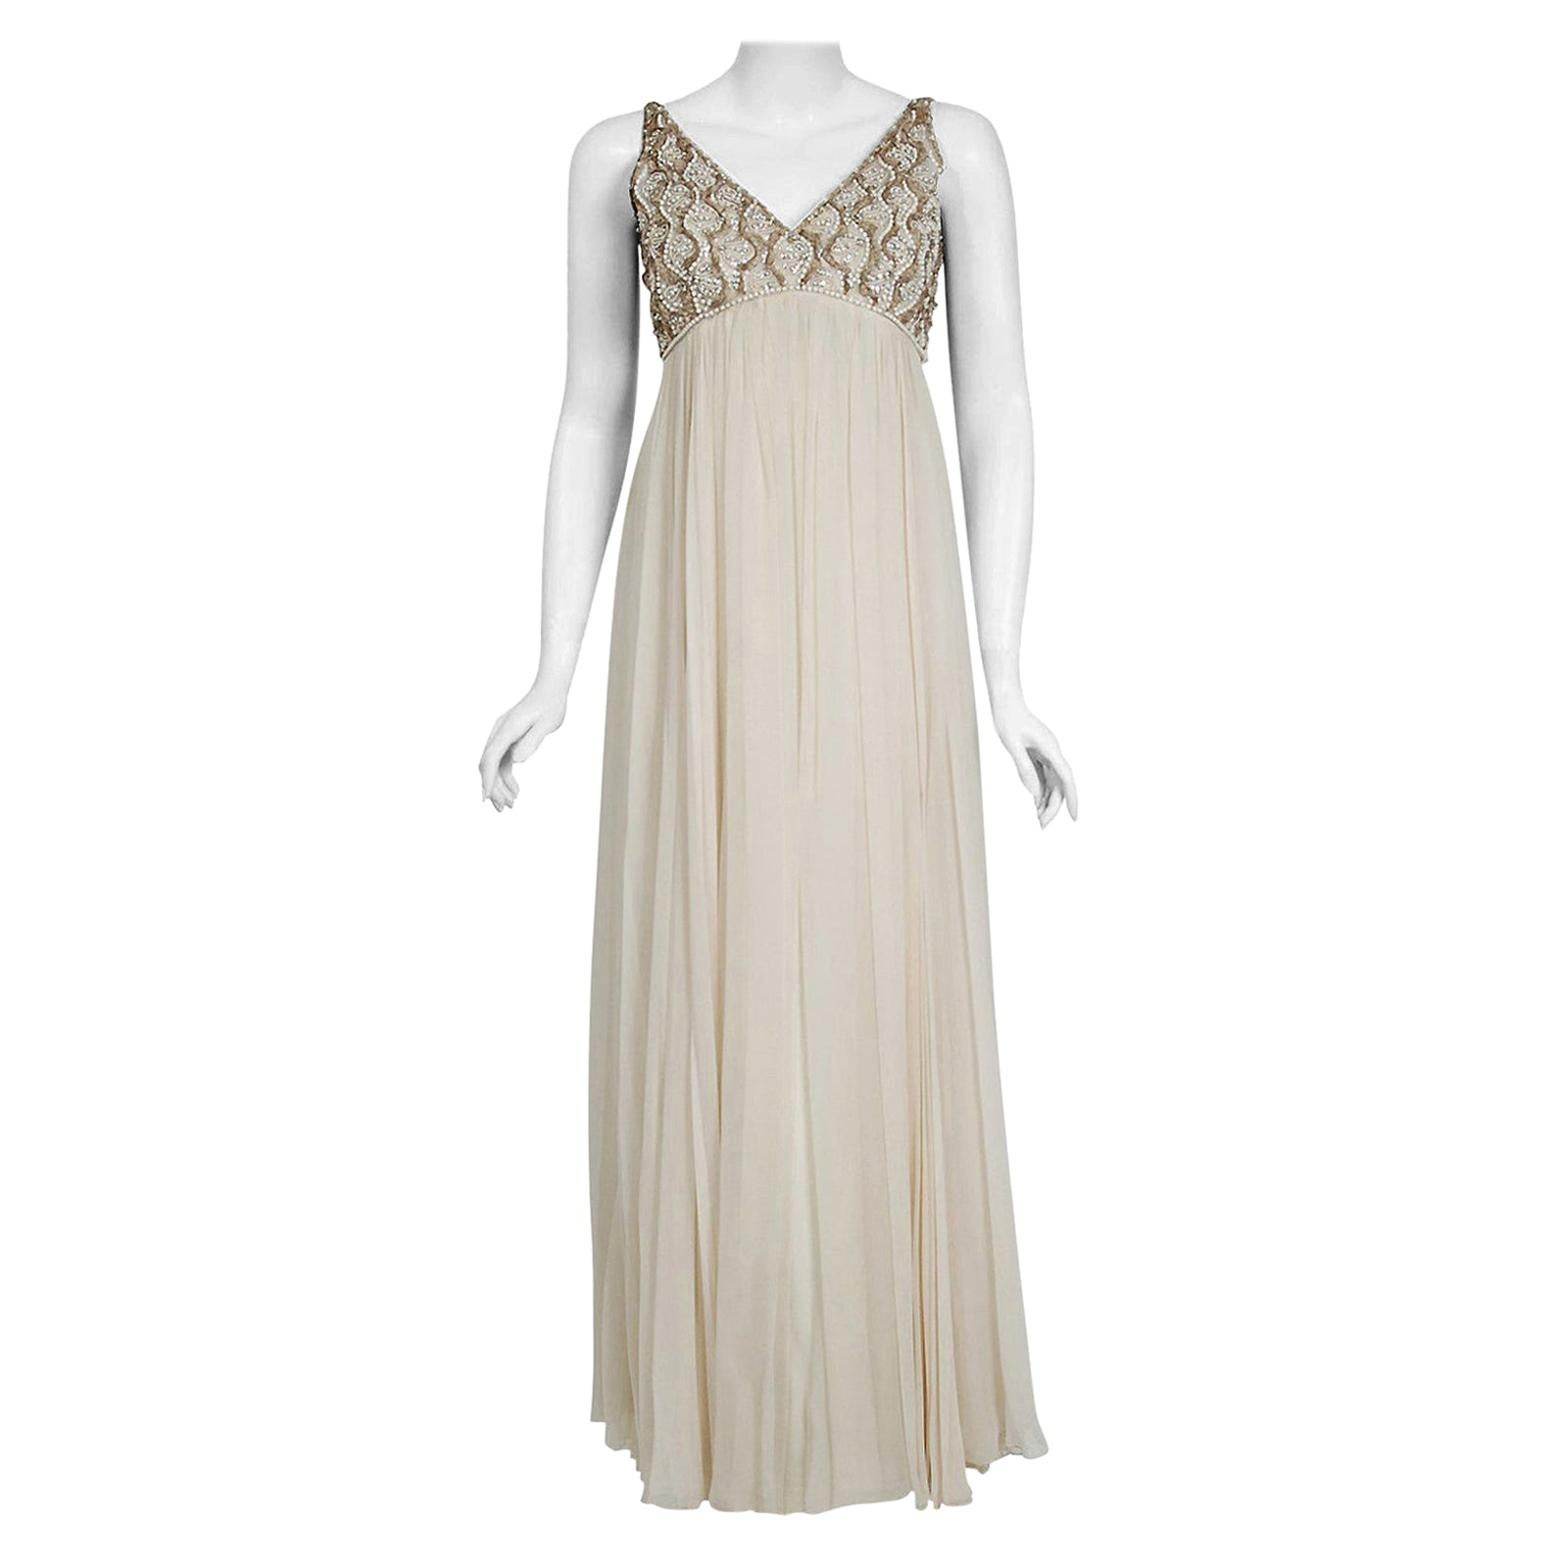 Vintage 1960's Malcolm Starr Beaded Ivory Silk-Chiffon Empire Bridal Dress Gown